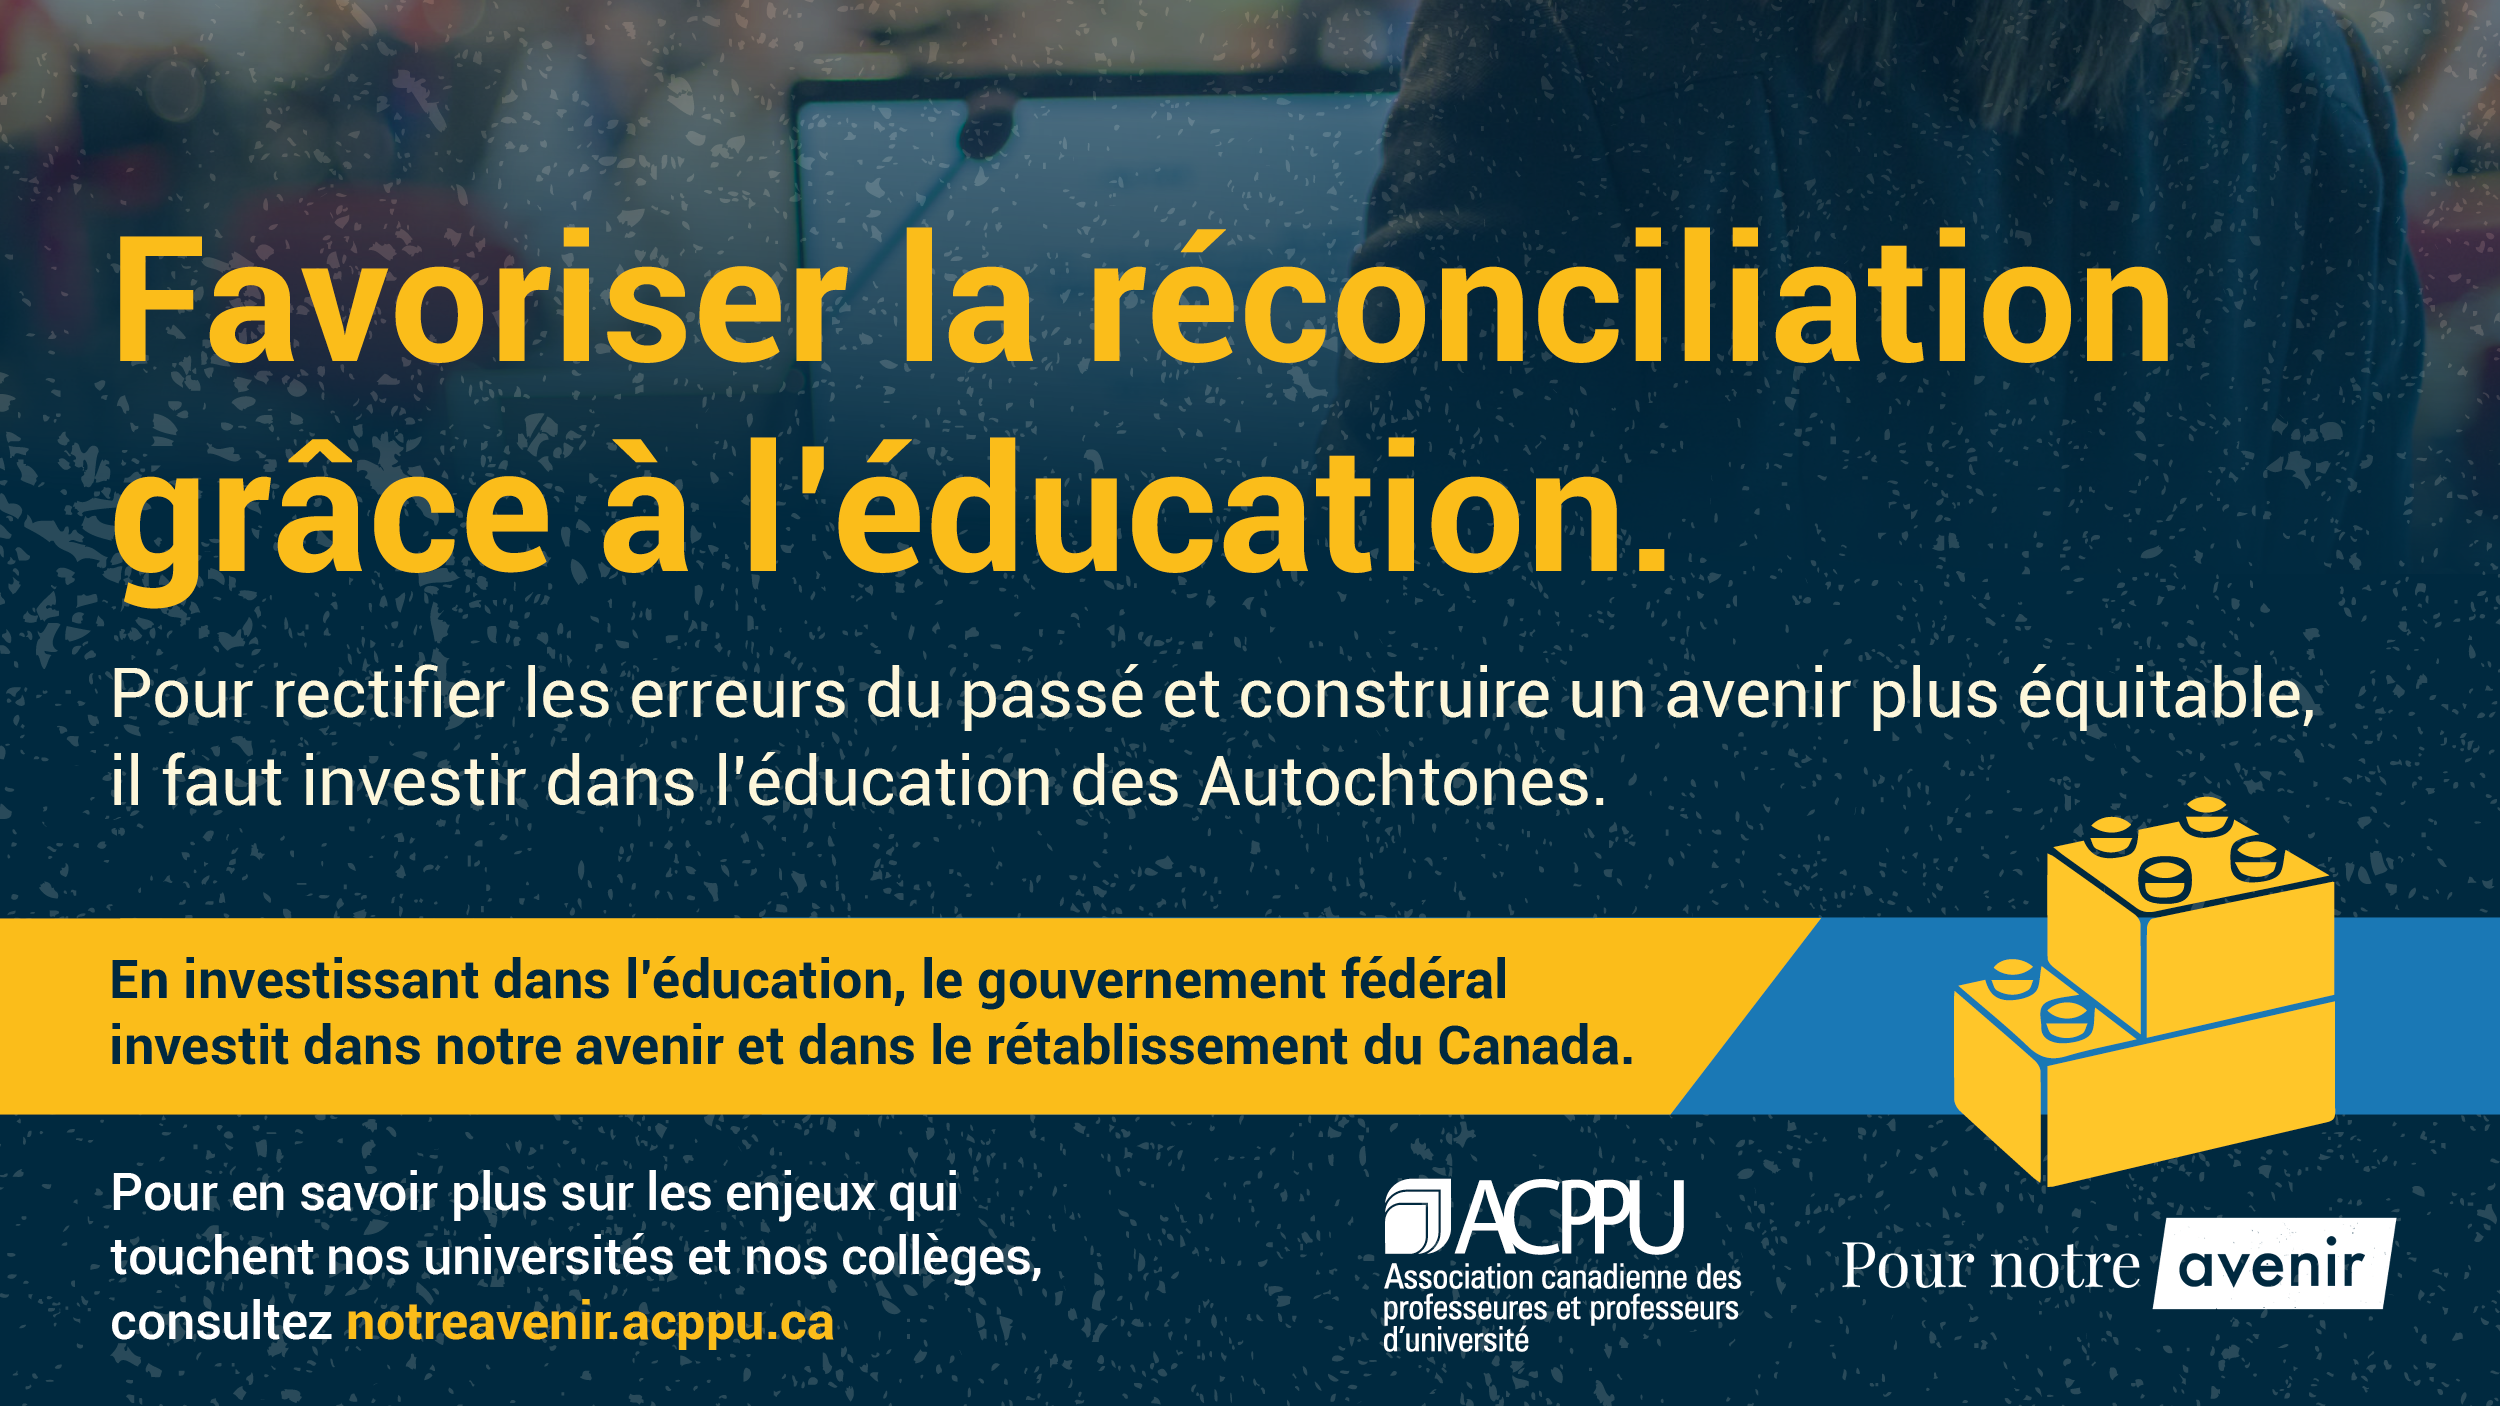 FOF-2021-shareables-reconciliation.png